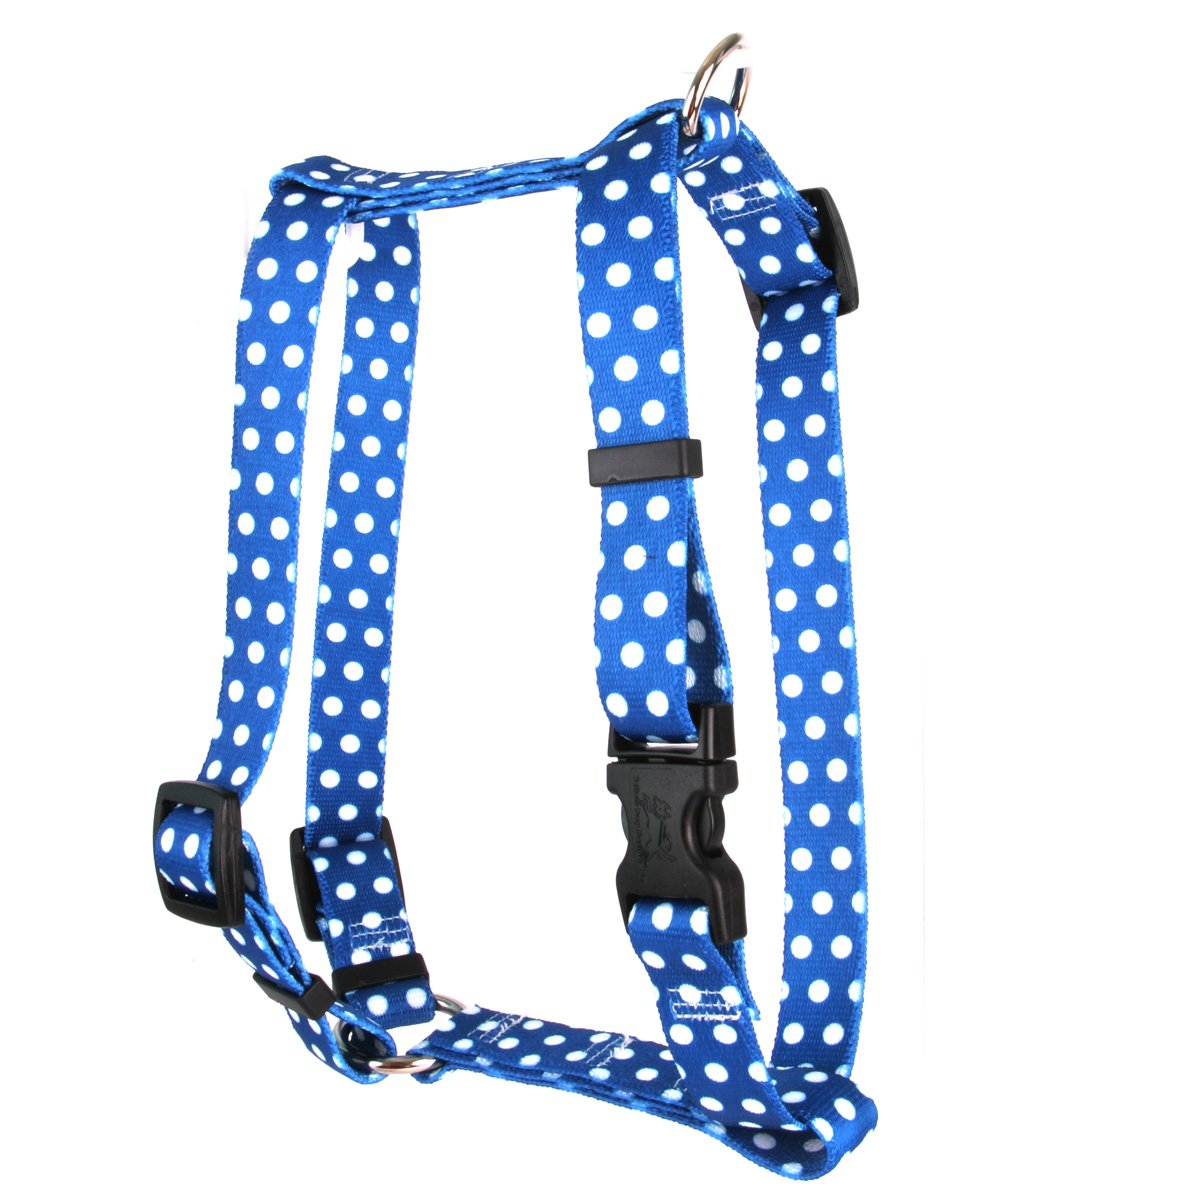 Yellow Dog Design Navy Polka Dot Roman Style H Dog Harness, X-Large-1'' Wide and fits Chest of 28 to 36''